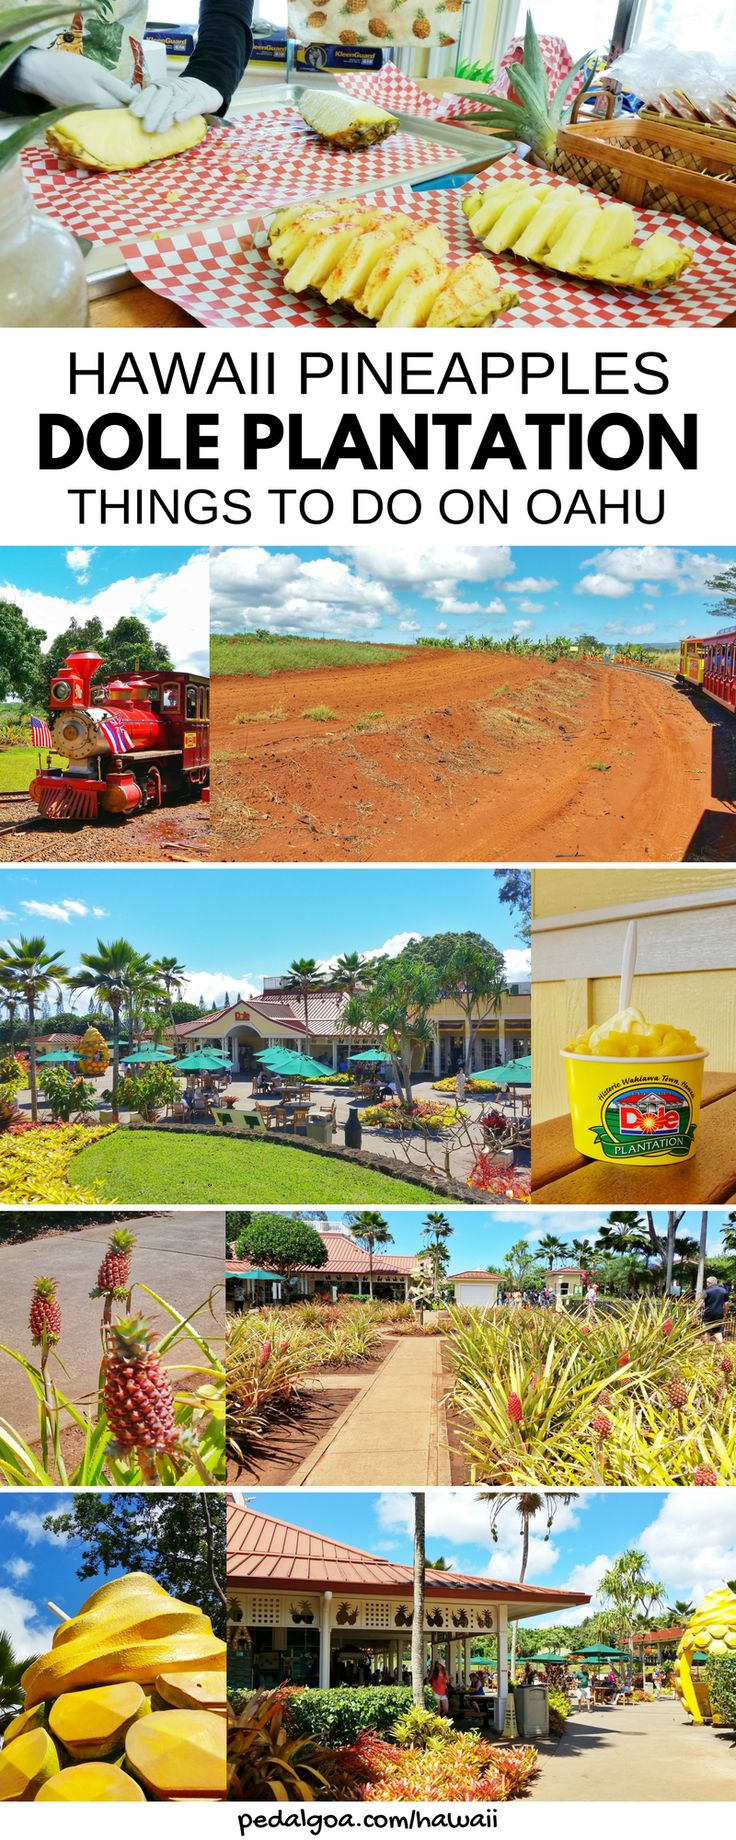 Dole pineapple plantation in Hawaii is top tourist attraction in Oahu! Fun things to do for free when in Hawaii on a budget, with kids for family travel. Eat famous dole pineapple whip ice cream at restaurant and shopping for souvenirs at gift shop. There's also maze, tours of gardens, trains, with Hawaiian culture. Trip to dole pineapple plantation on Hawaii vacation can be on the way to North Shore beaches from Waikiki, worthy on list of Oahu activities, USA destinations.. #hawaii #oahu